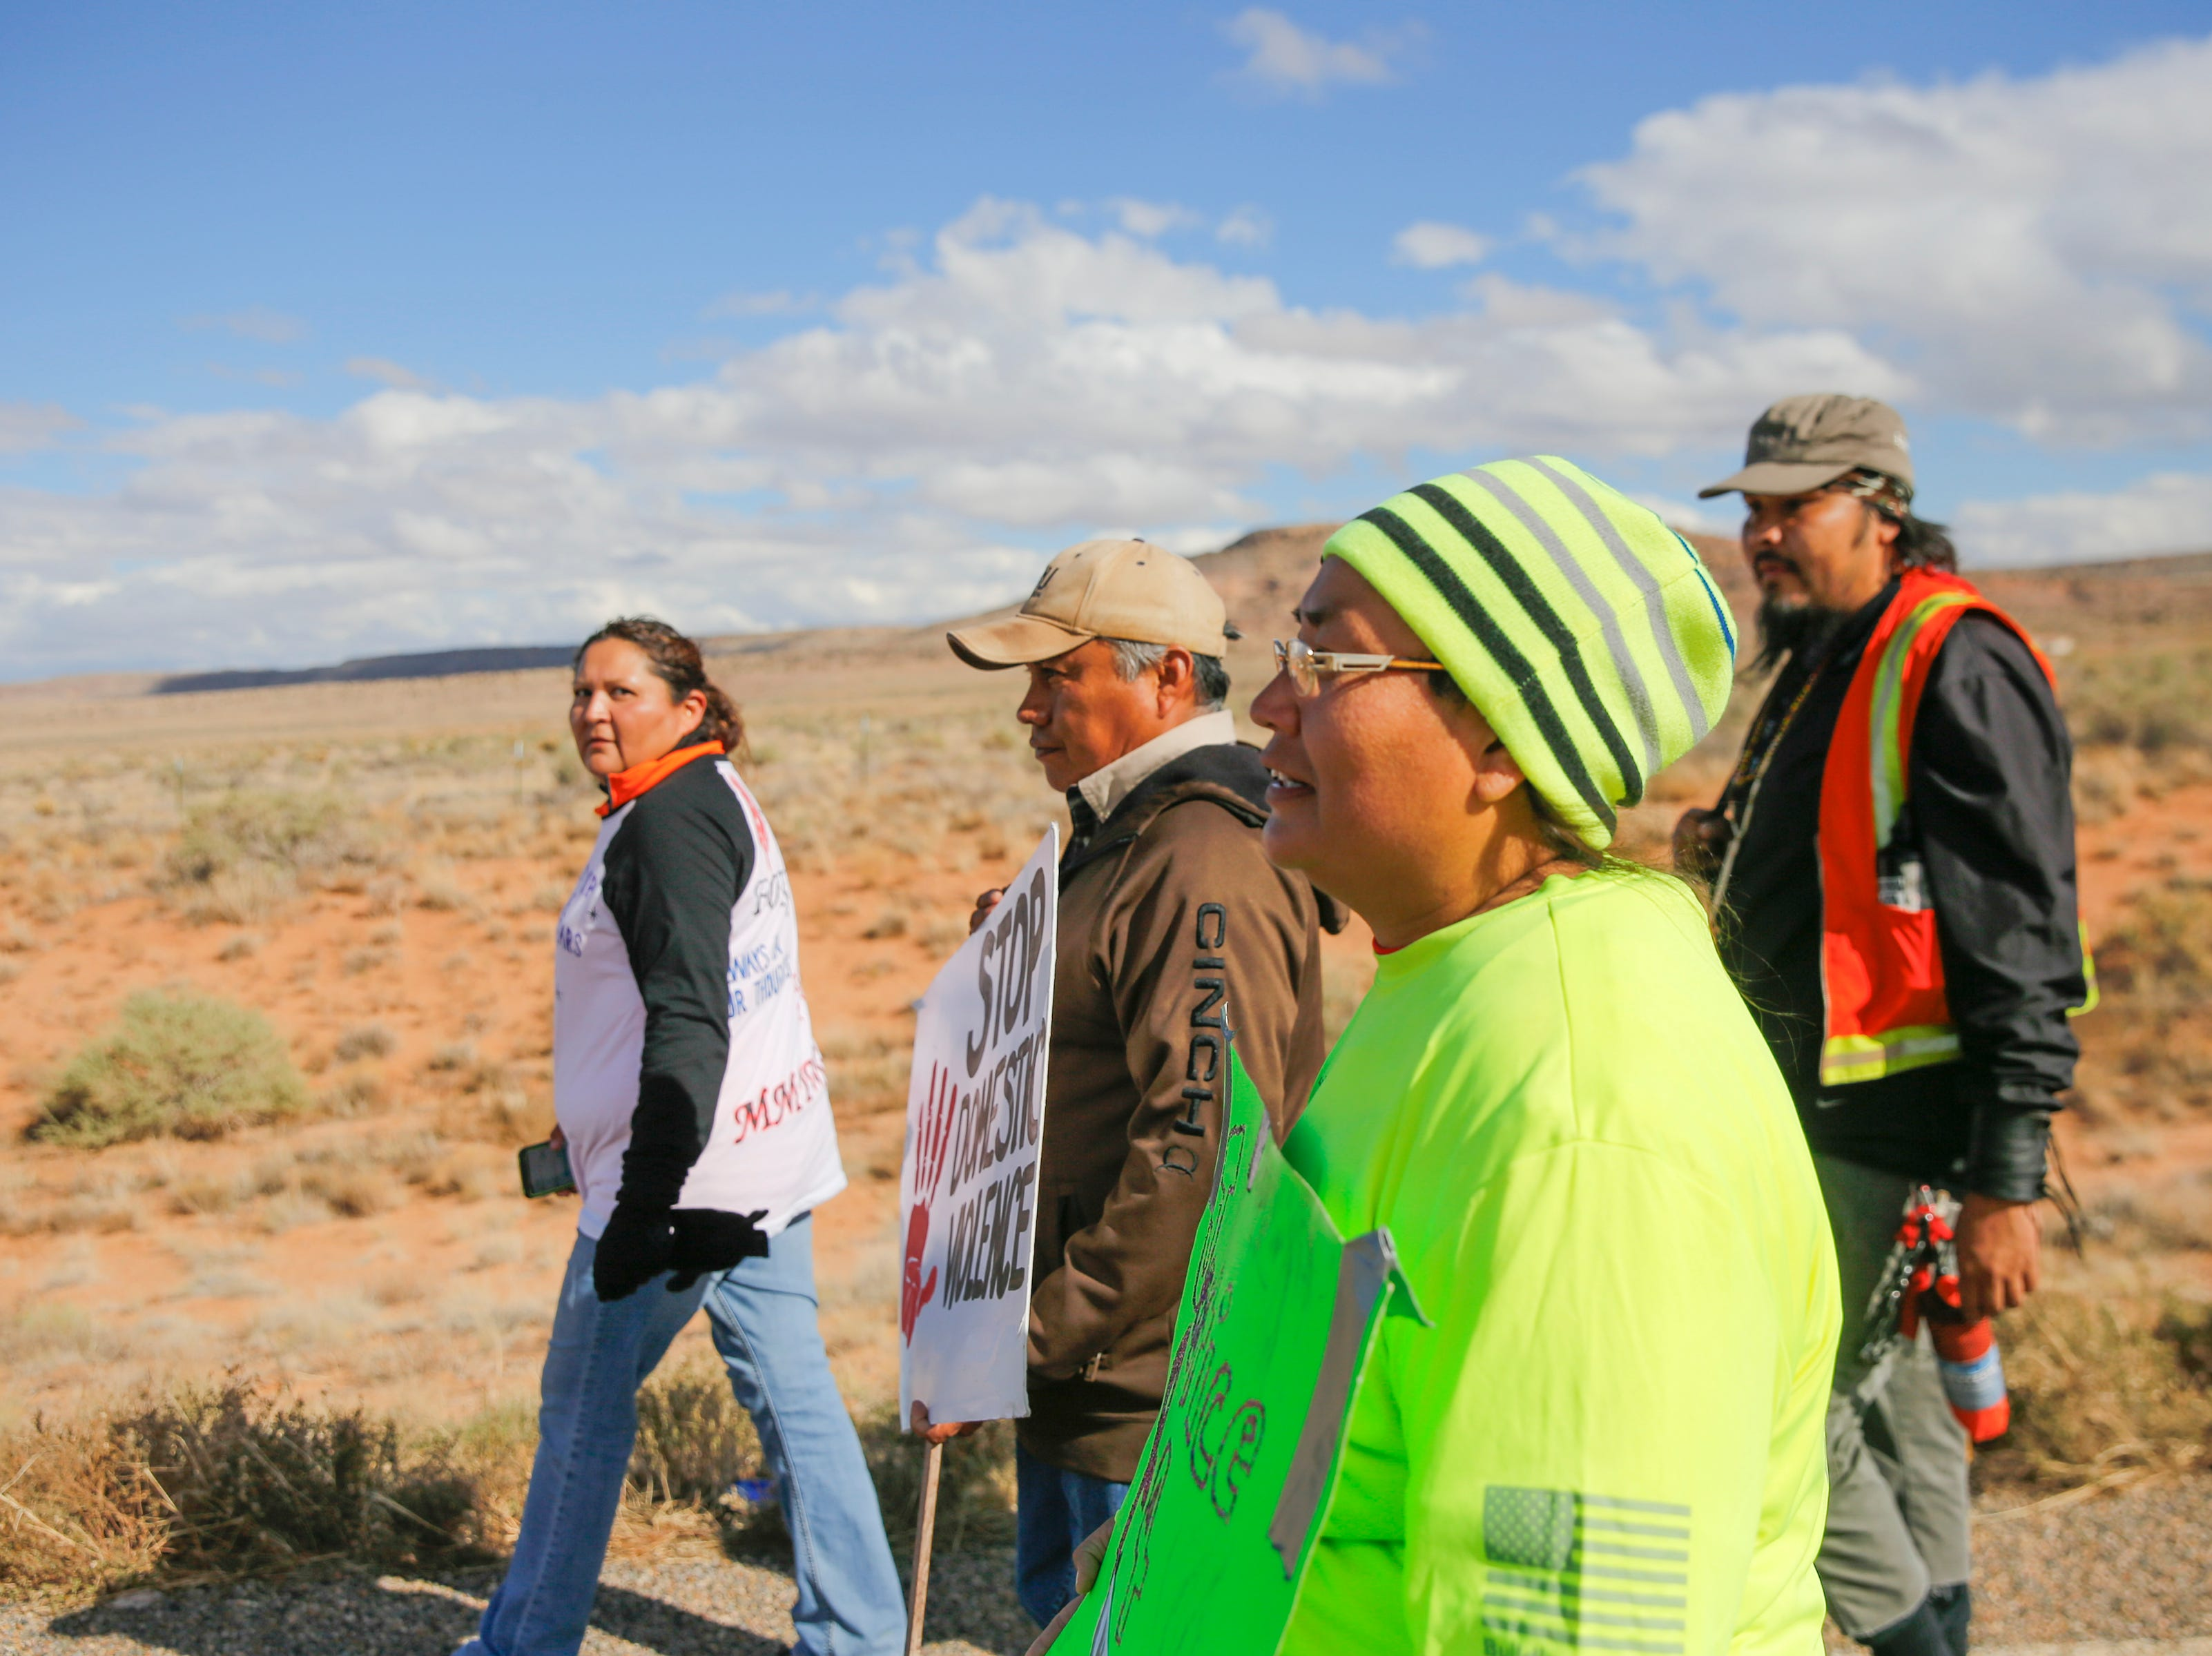 From left, Johannah Barber, Jerald Begay, Sarah Begay and Bobby Mason participate in an awareness walk organized by Walking the Healing Path, Thursday, Oct. 18, 2018 along Navajo Route 13 in Red Valley, Arizona.